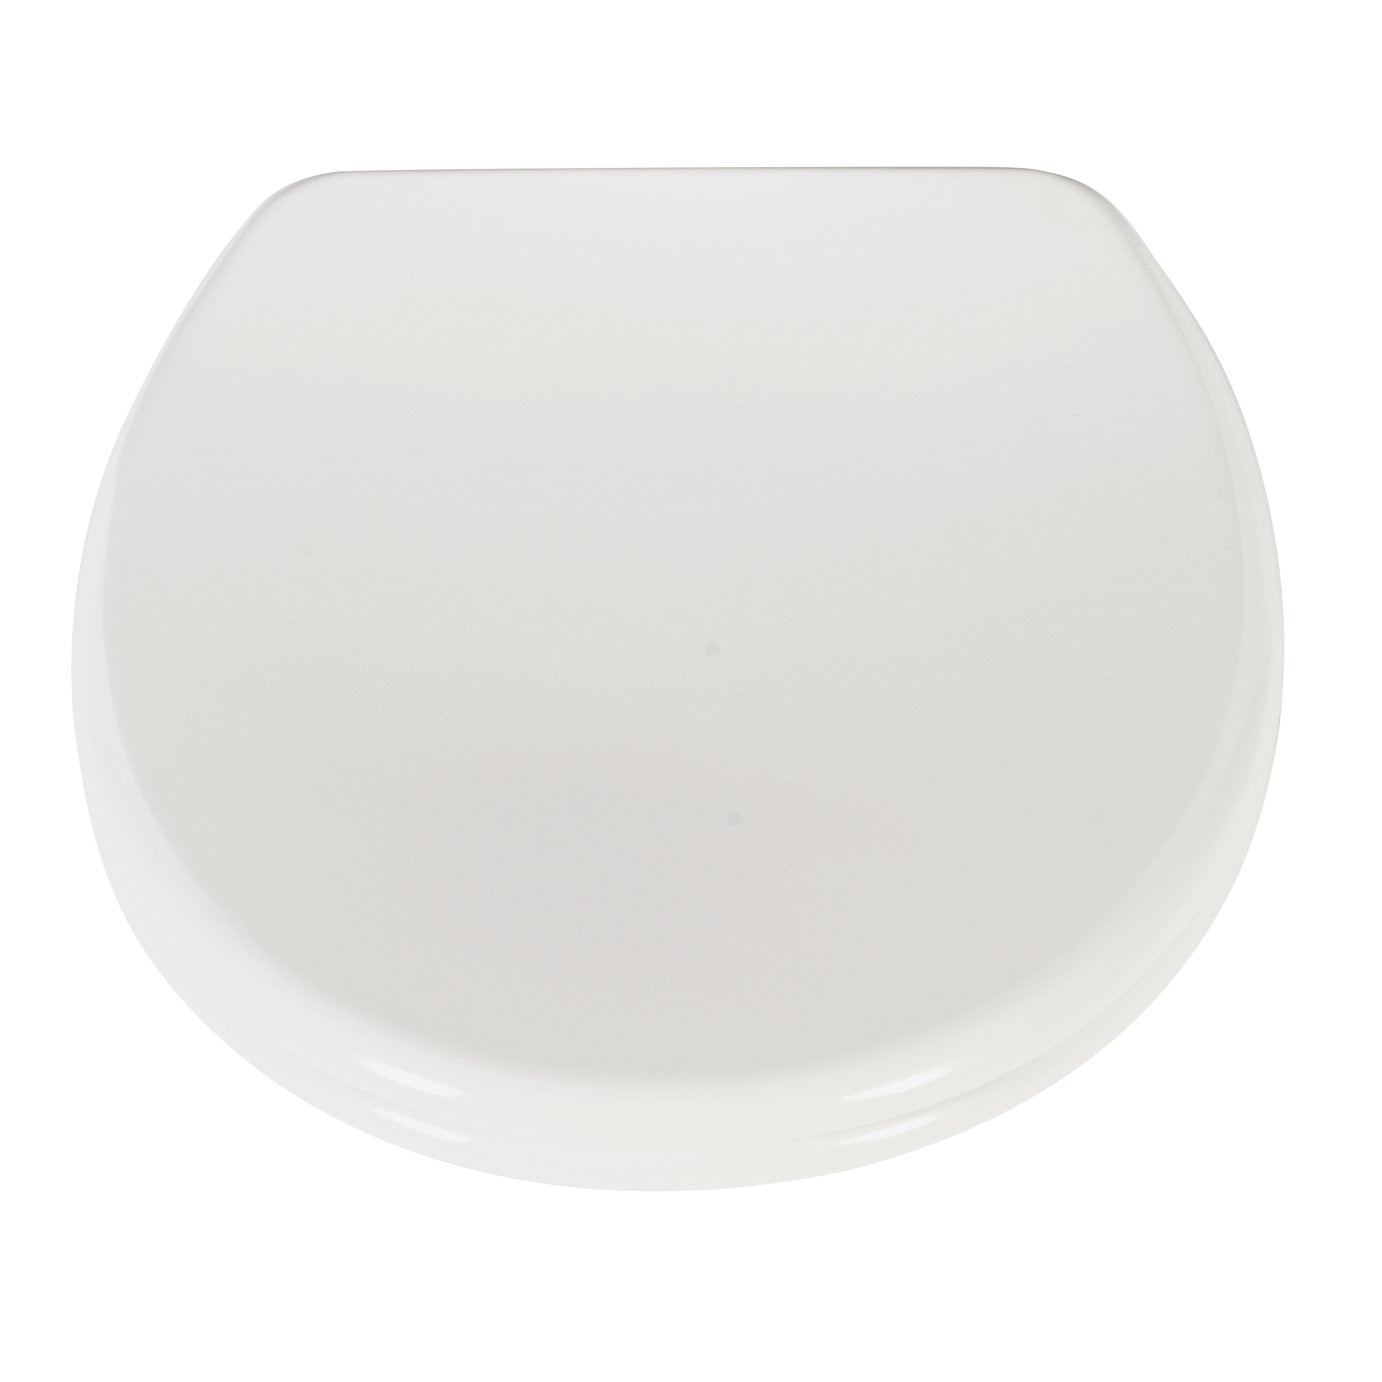 HOME Thermoplastic Slow Close Easy Clean Toilet Seat - White